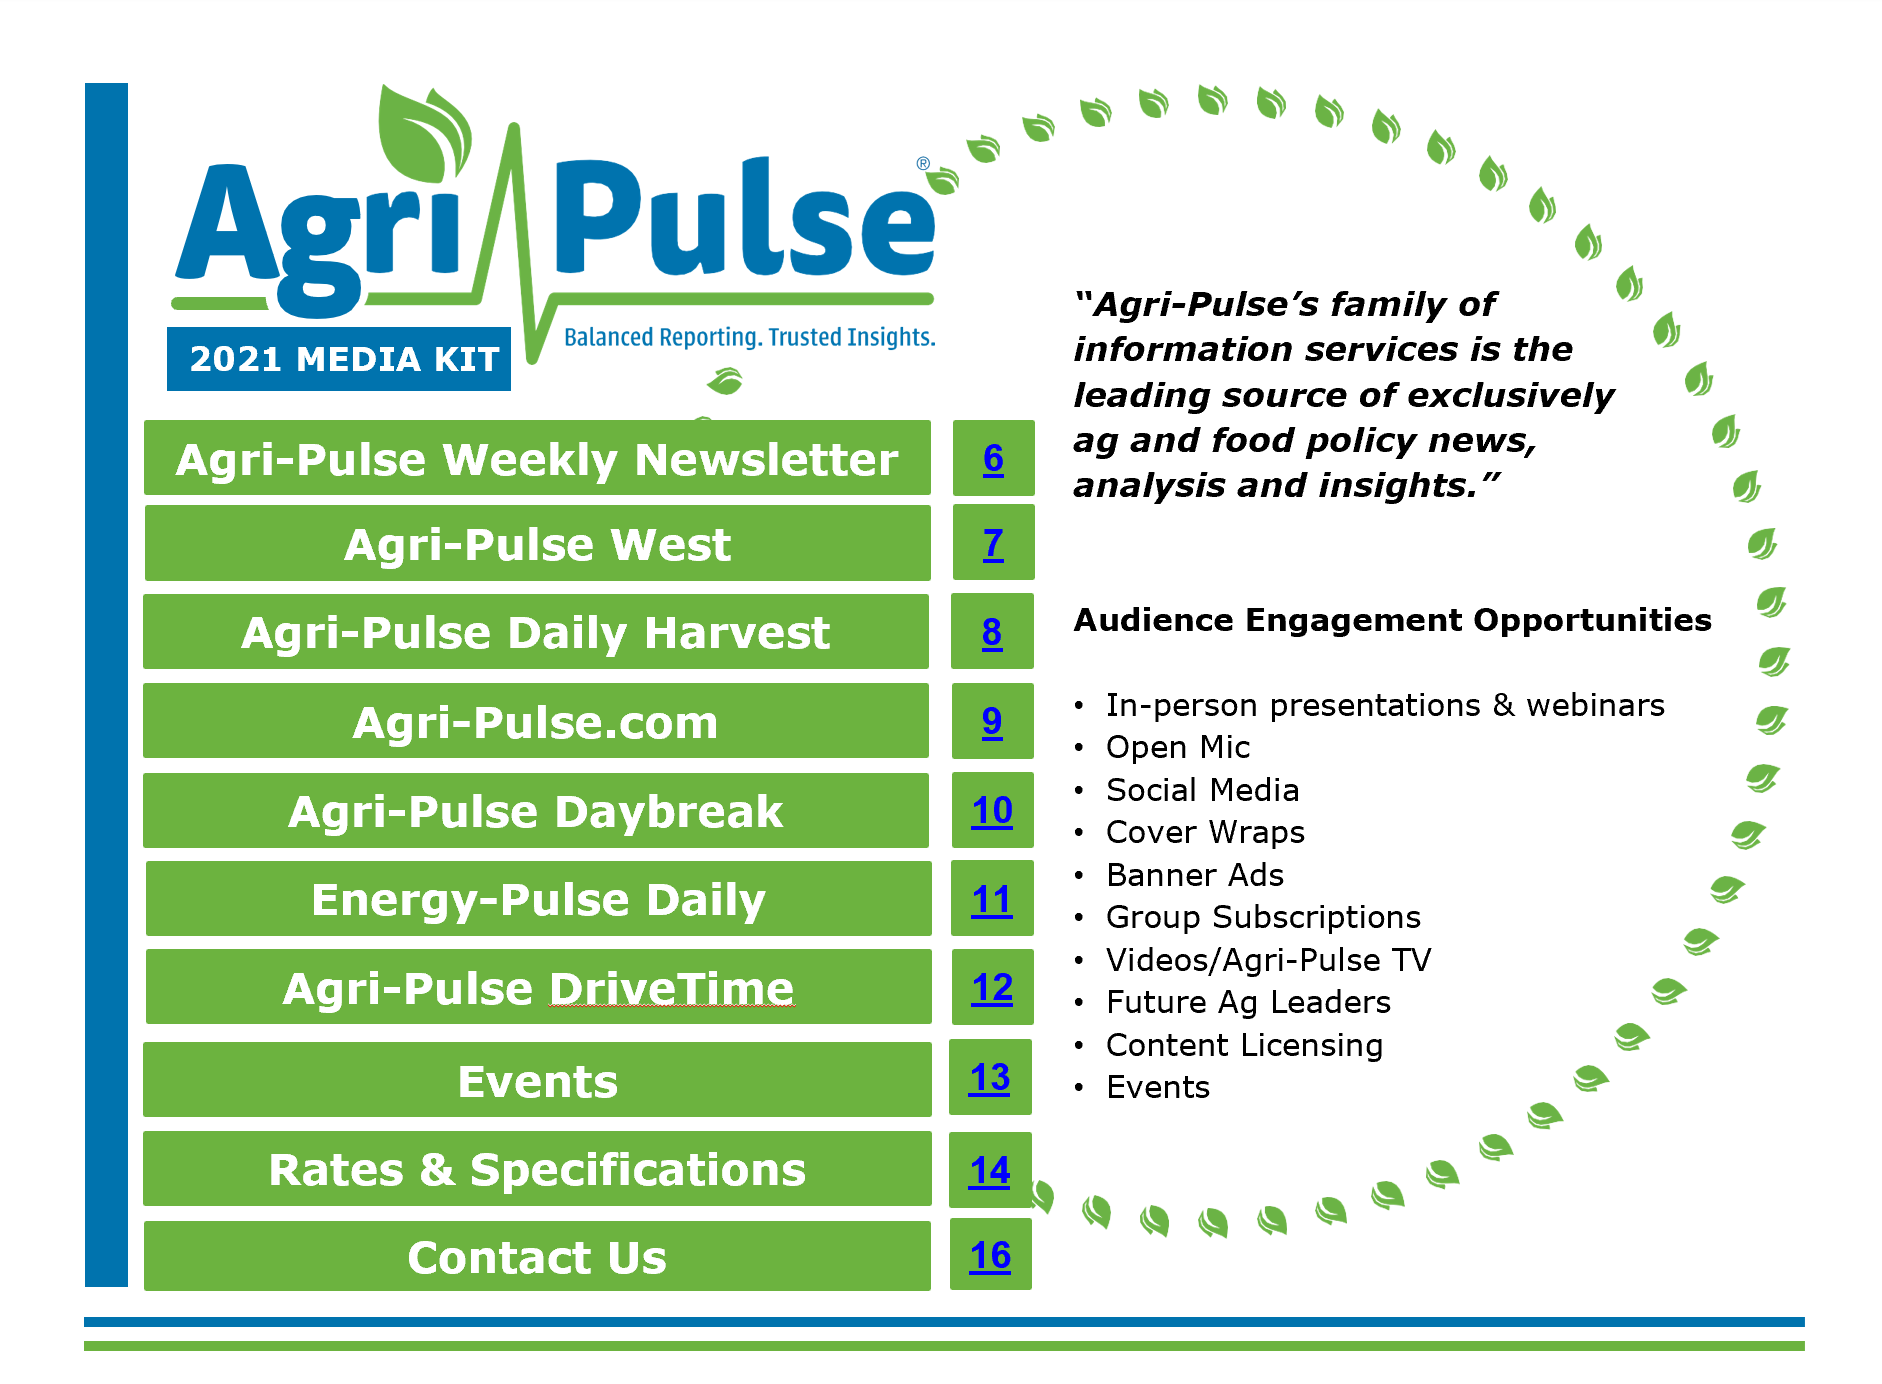 Agri-Pulse Media Kit 2020